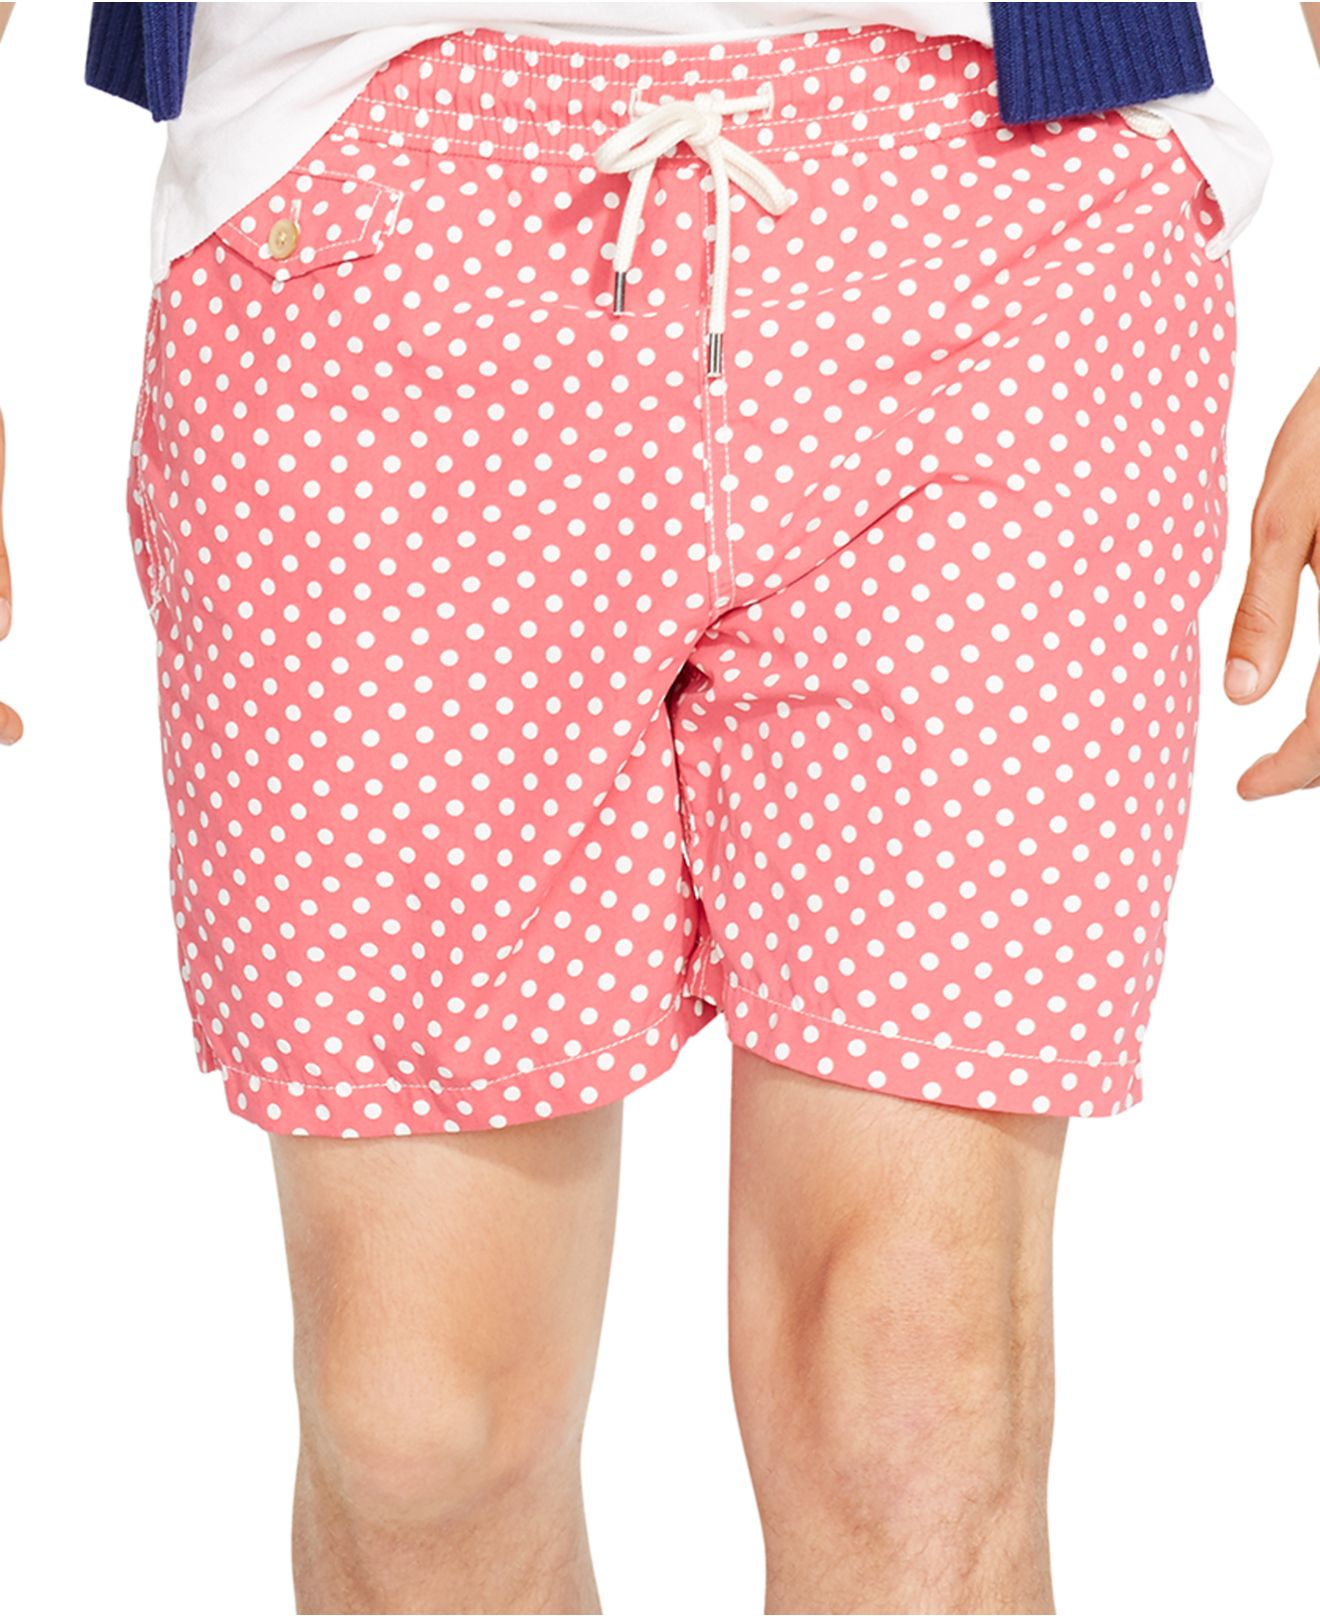 fa4ab2af25 ... release date lyst polo ralph lauren traveler dotted swim shorts in pink  for men 7c50d 09919 ...